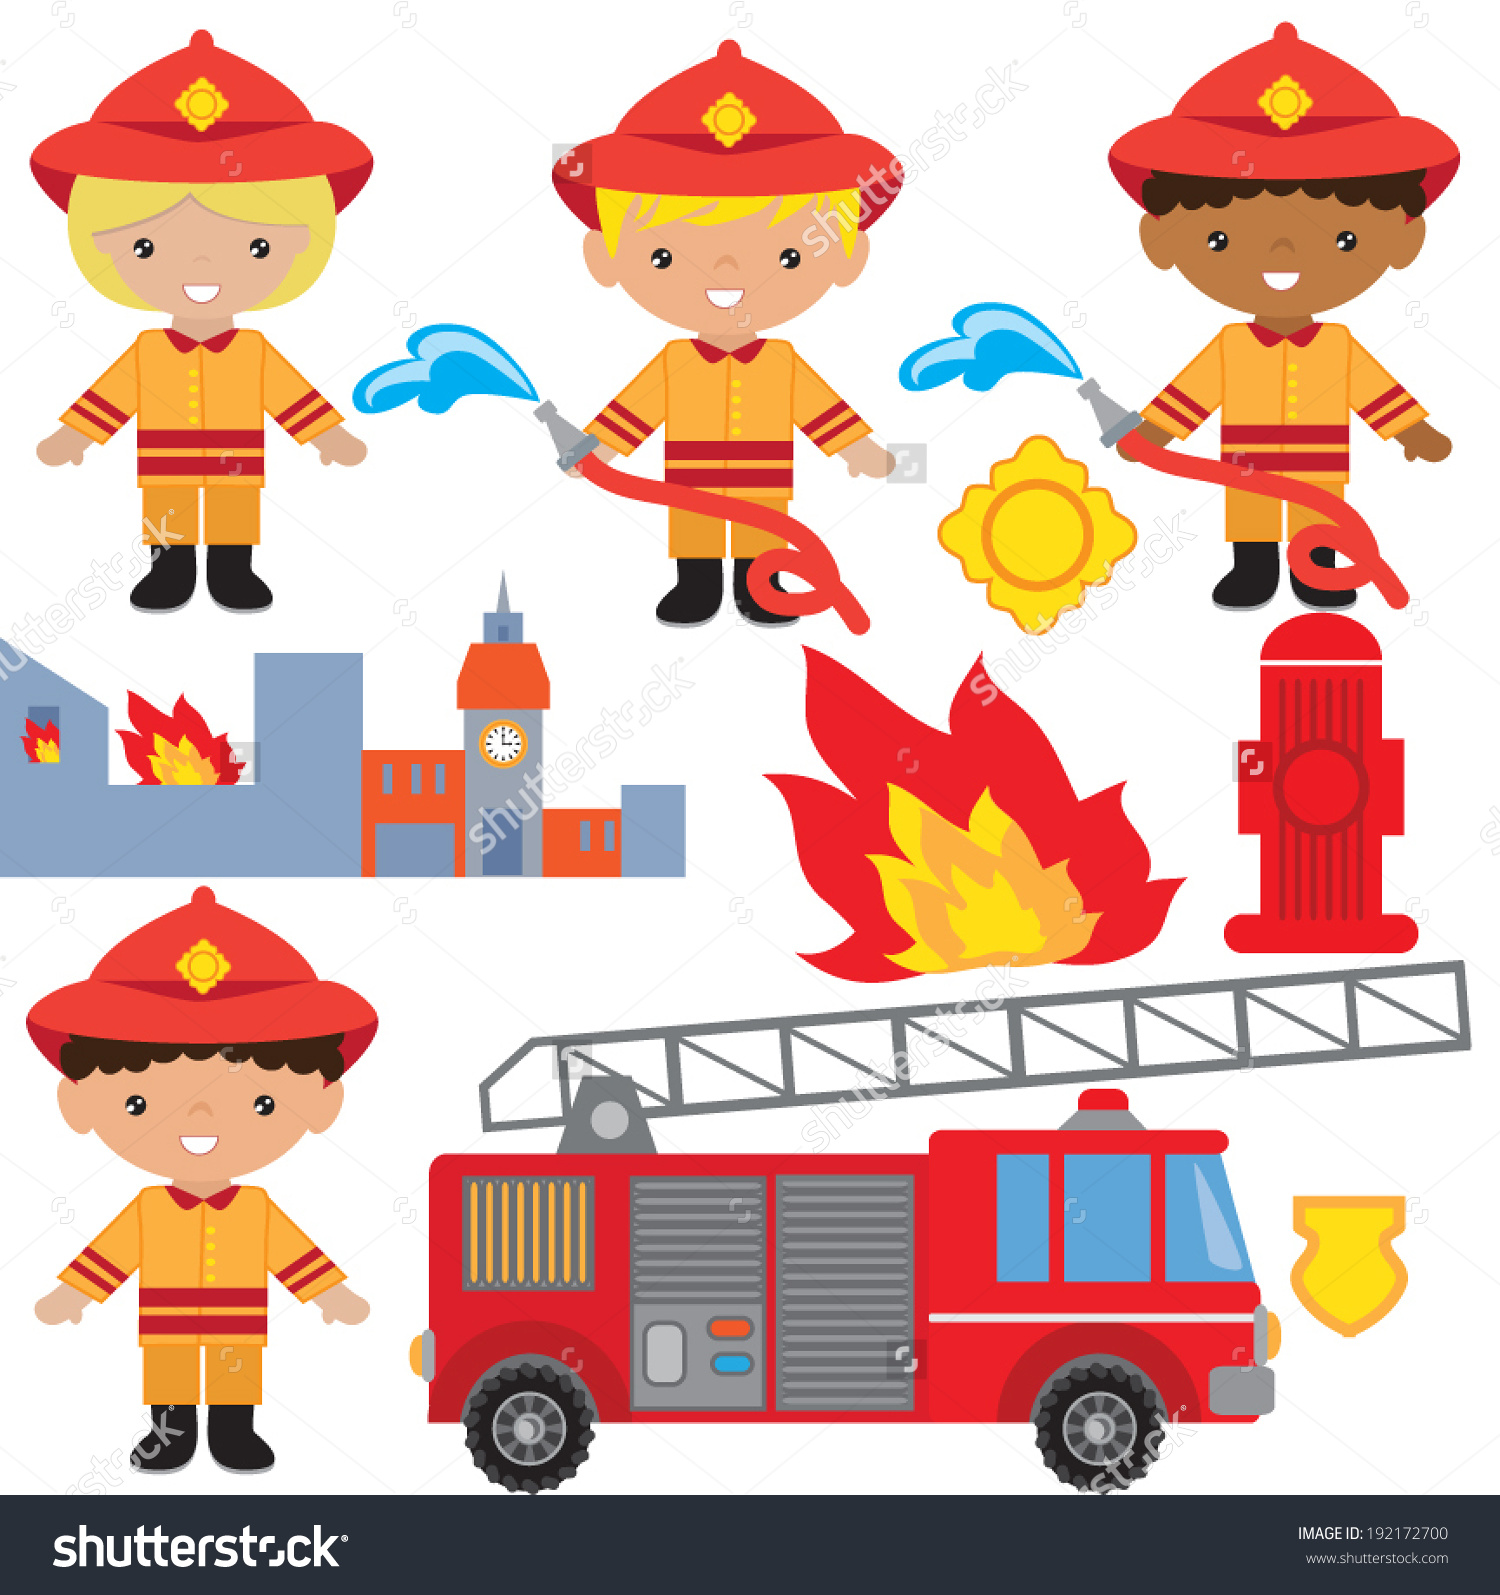 cute firefgighter clipart - Clipground